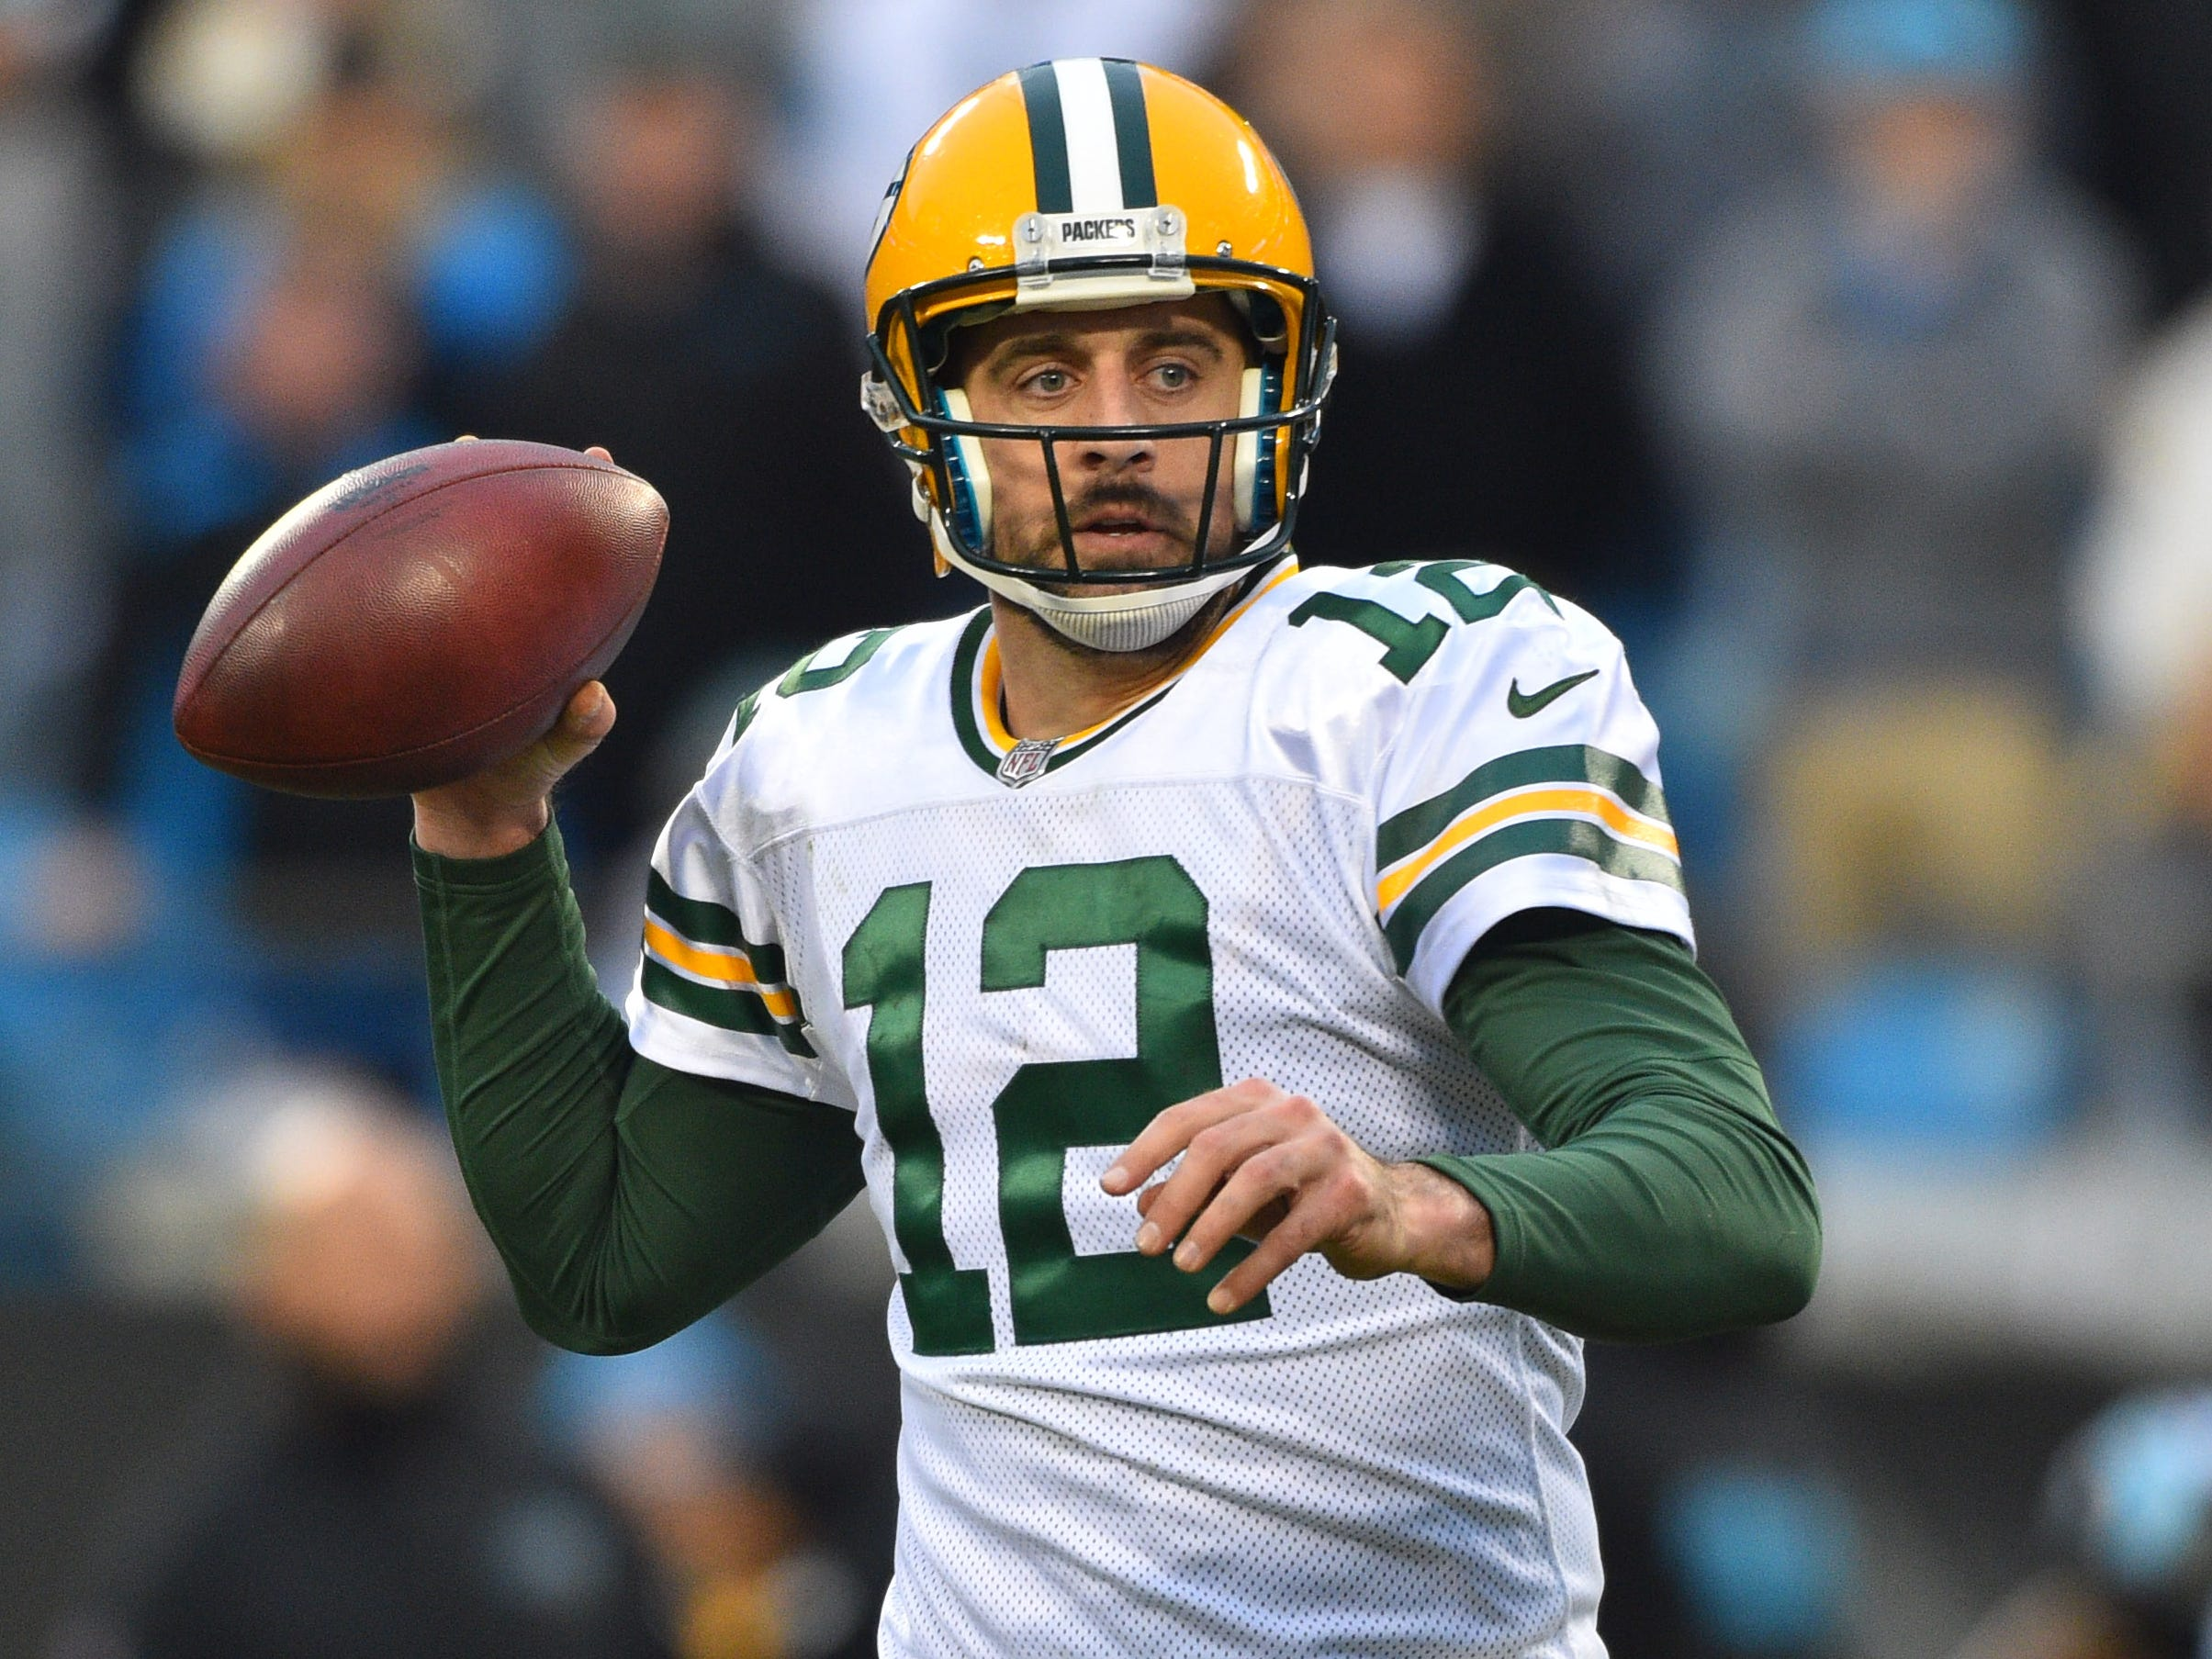 No. 24: Aaron Rodgers, QB, Packers